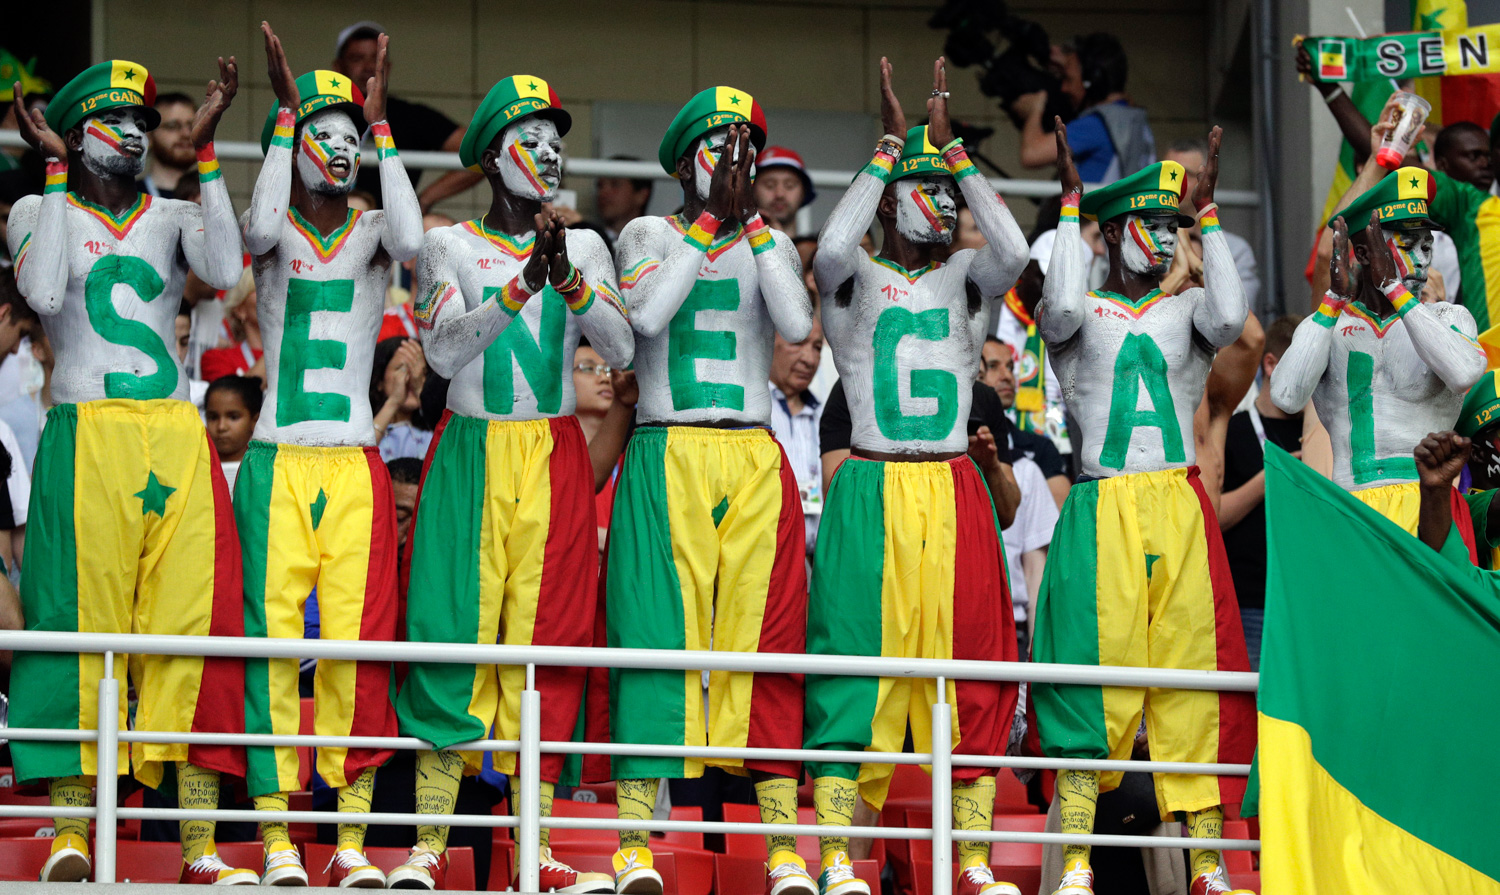 "<div class=""meta image-caption""><div class=""origin-logo origin-image none""><span>none</span></div><span class=""caption-text"">Senegal's fans, their bodies and faces painted in the colors of the national flag, support their team during the group H match between Poland and Senegal (Andrew Medichini/AP)</span></div>"